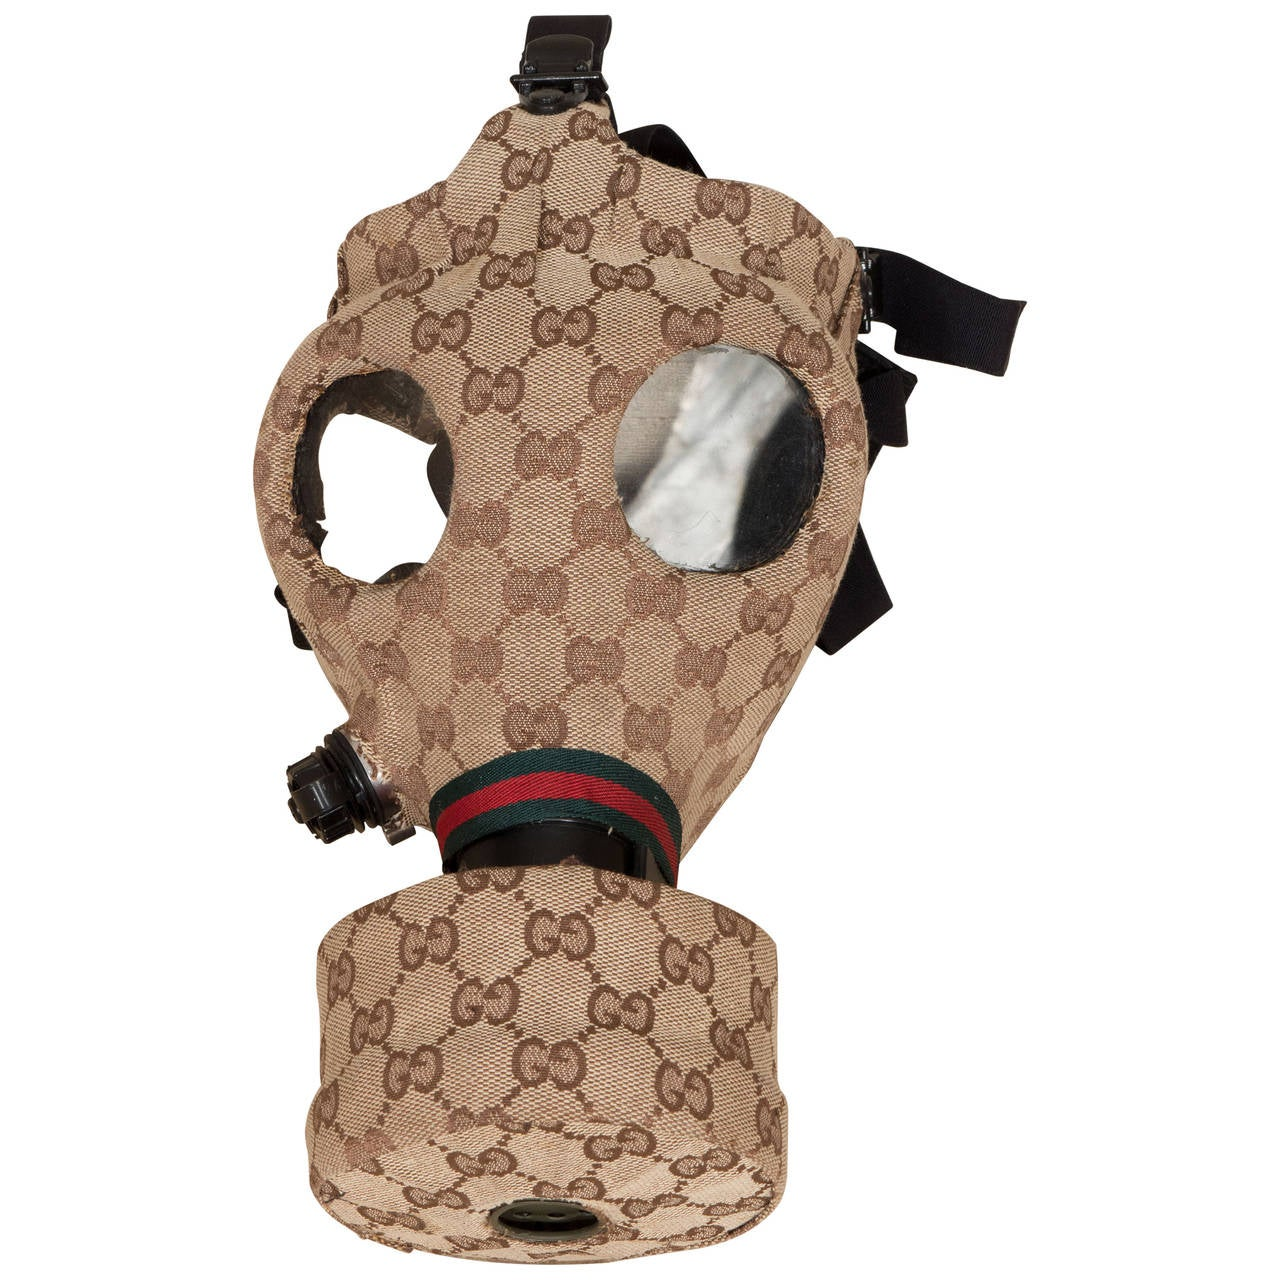 King Poster Bedroom Set Gas Mask By Gucci At 1stdibs